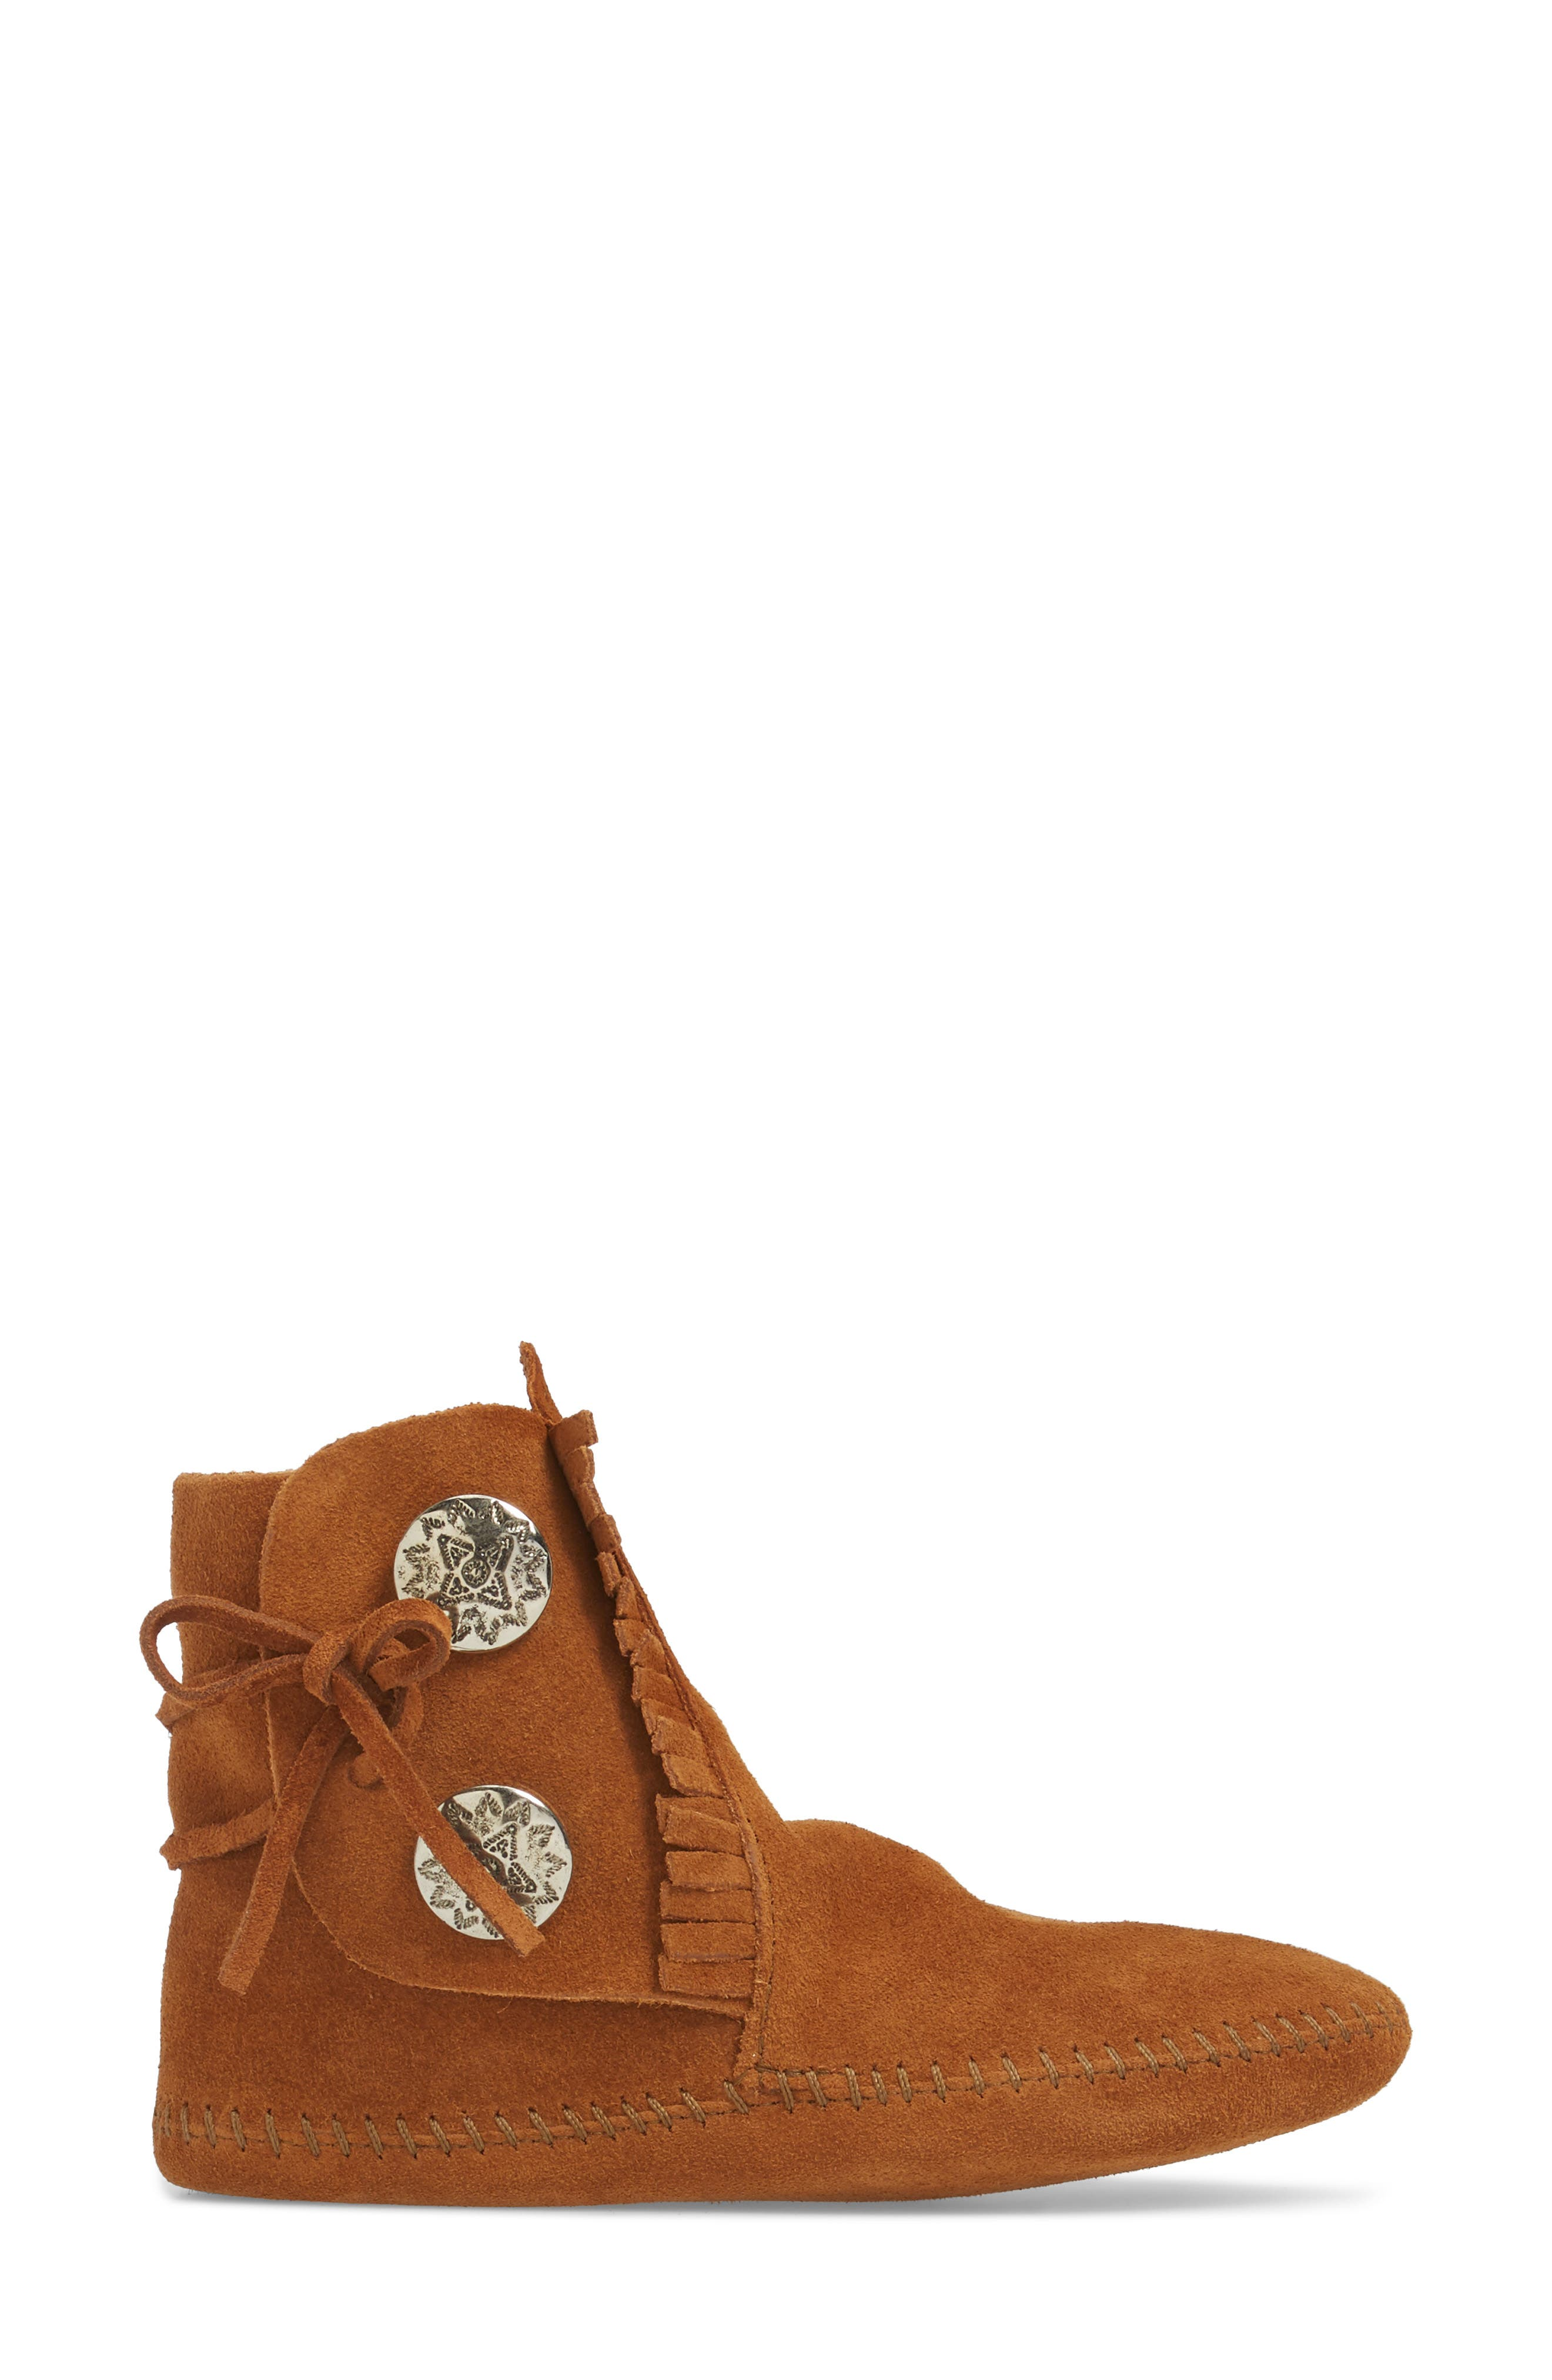 Two-Button Softsole Bootie,                             Alternate thumbnail 3, color,                             211